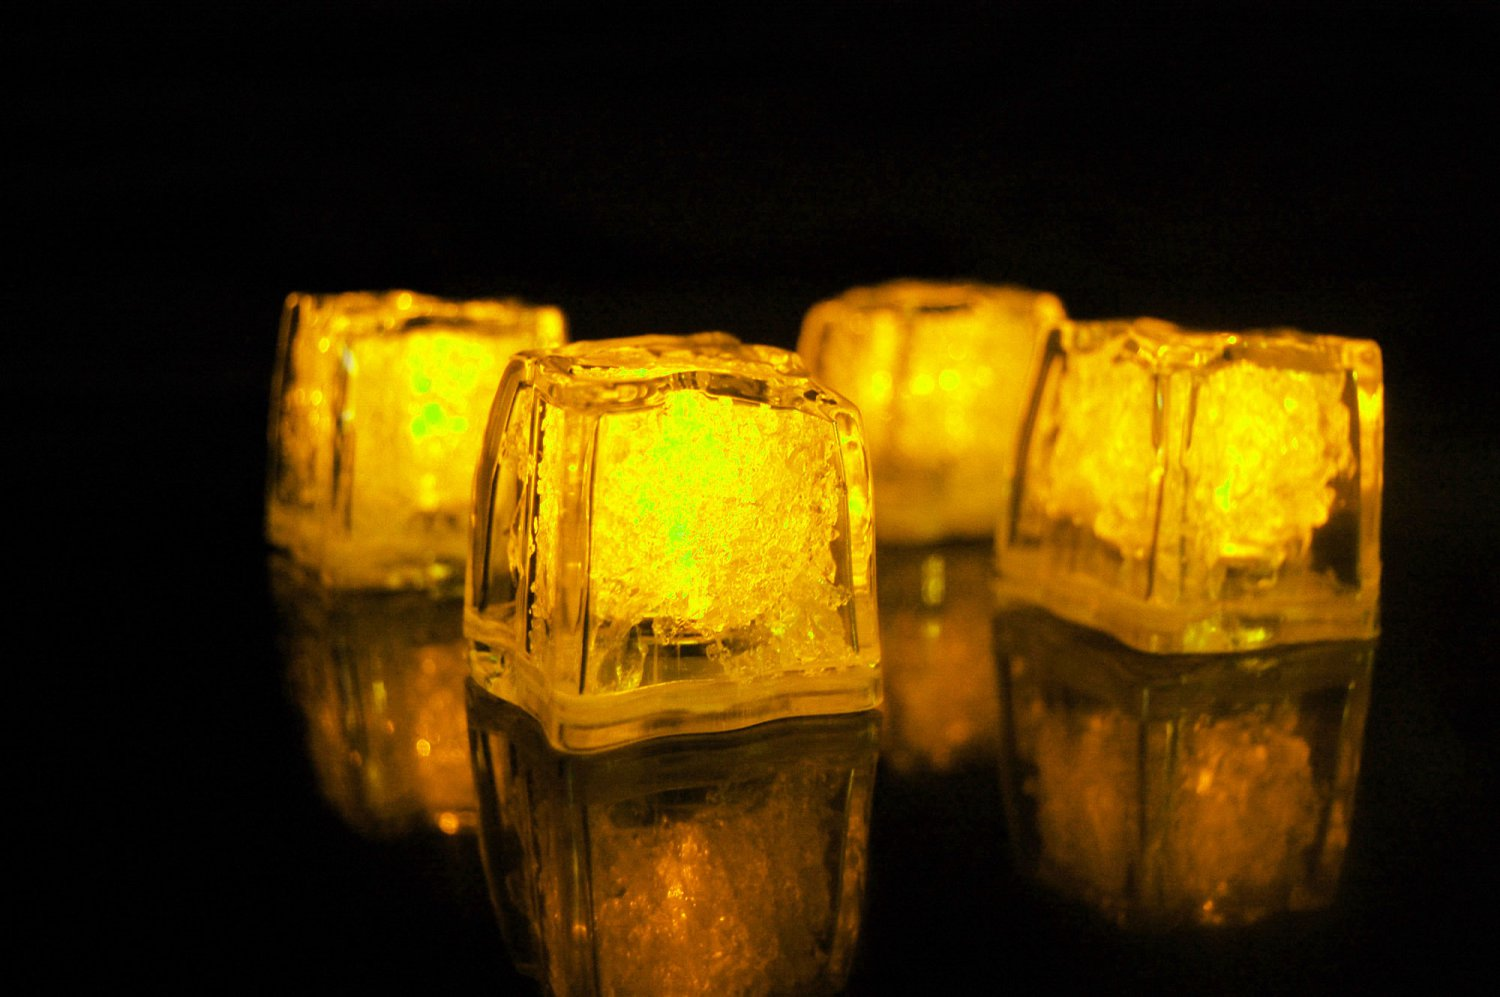 Set of 4 Litecubes  Brand Jewel Color Tinted Topaz Yellow Light up LED Ice Cubes